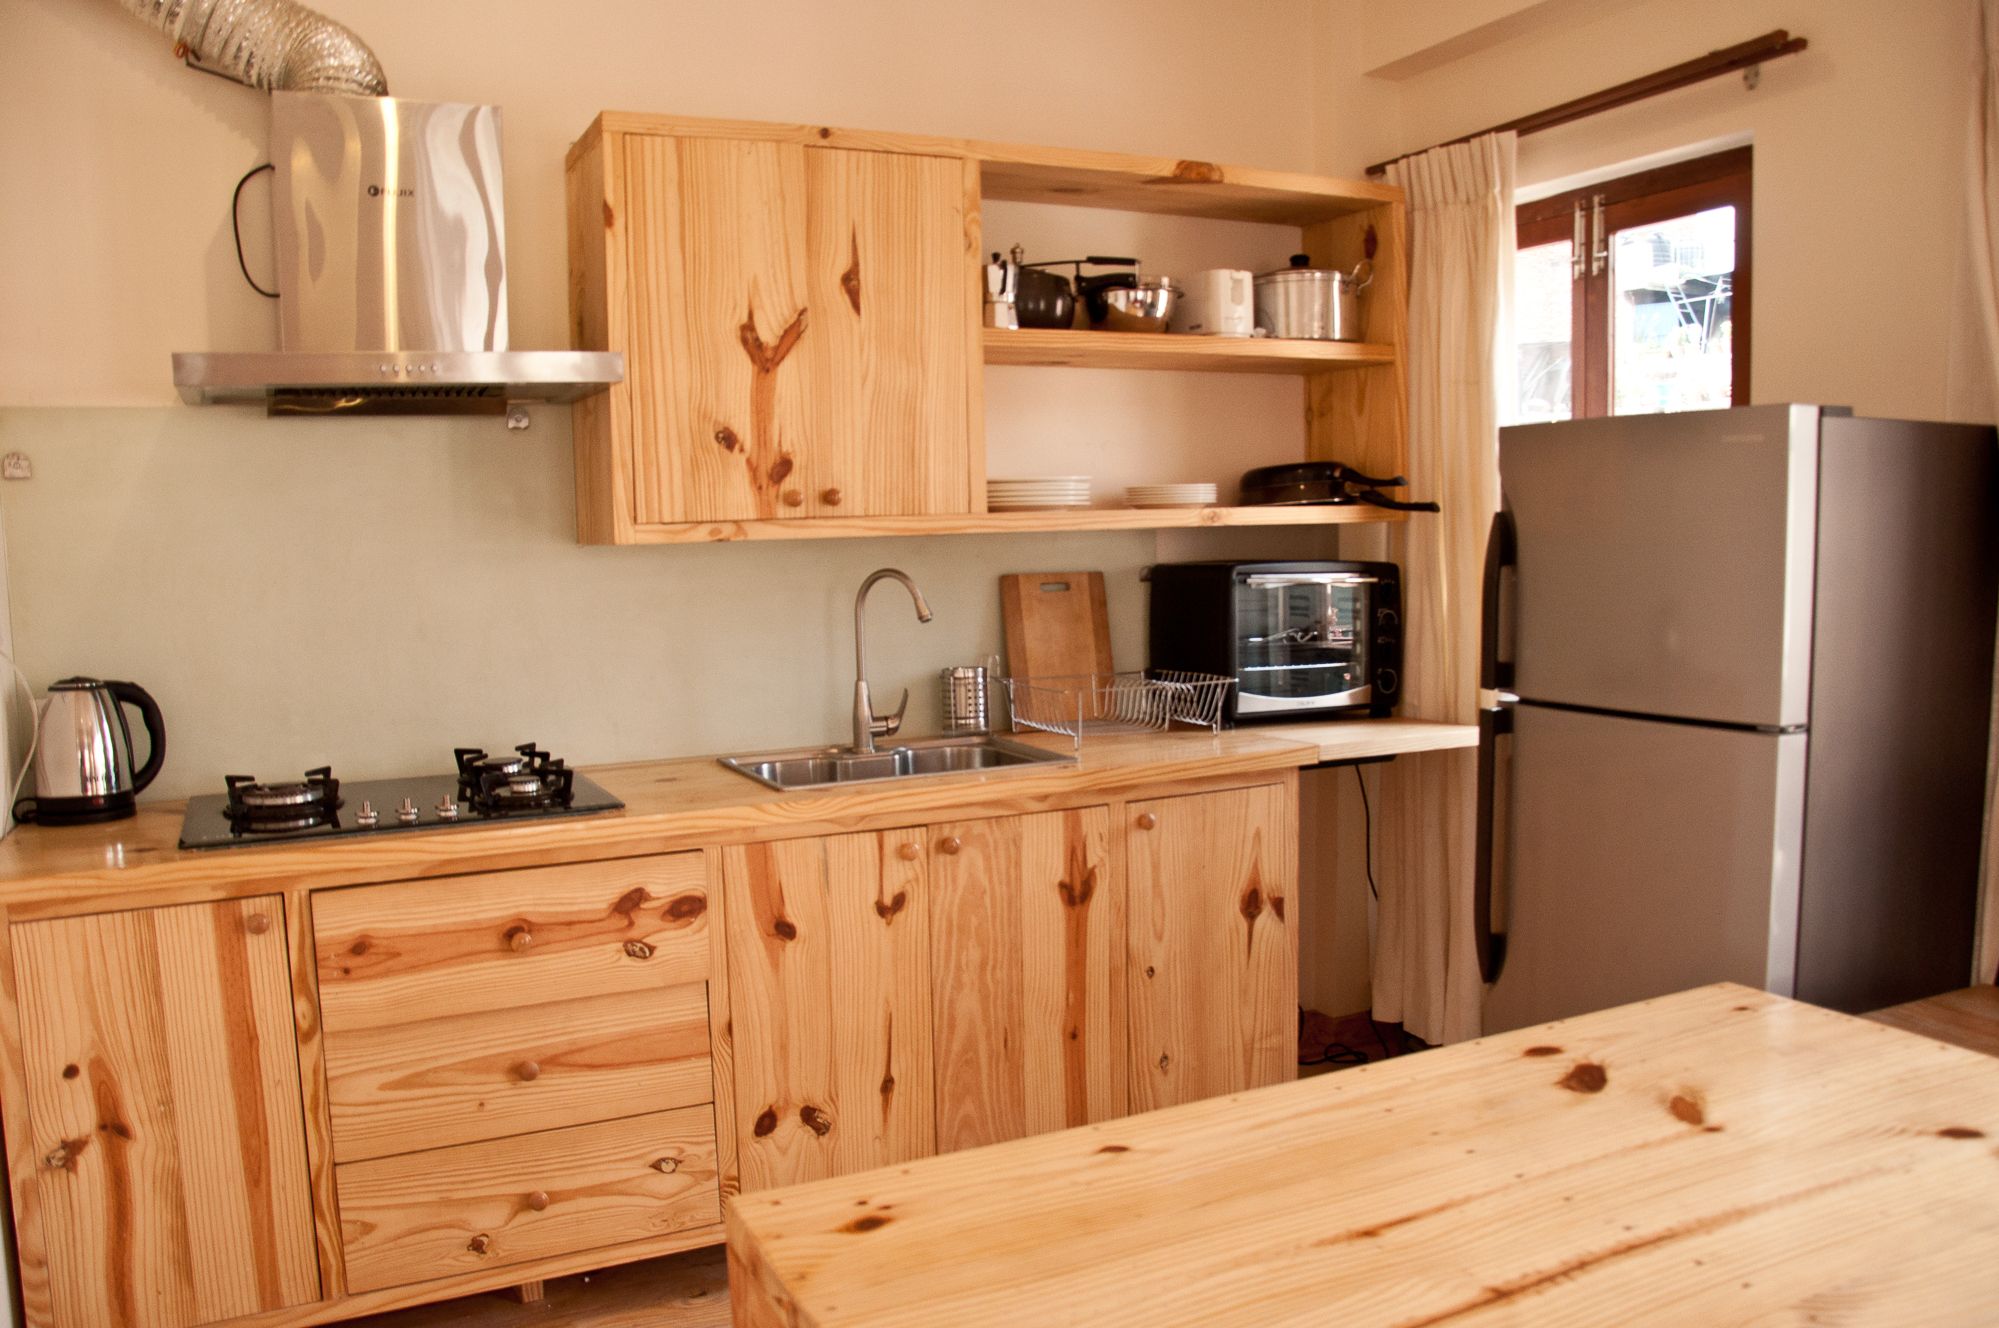 Well equipped Kitchen with oven, pots and pans, fridge , boiler and more.